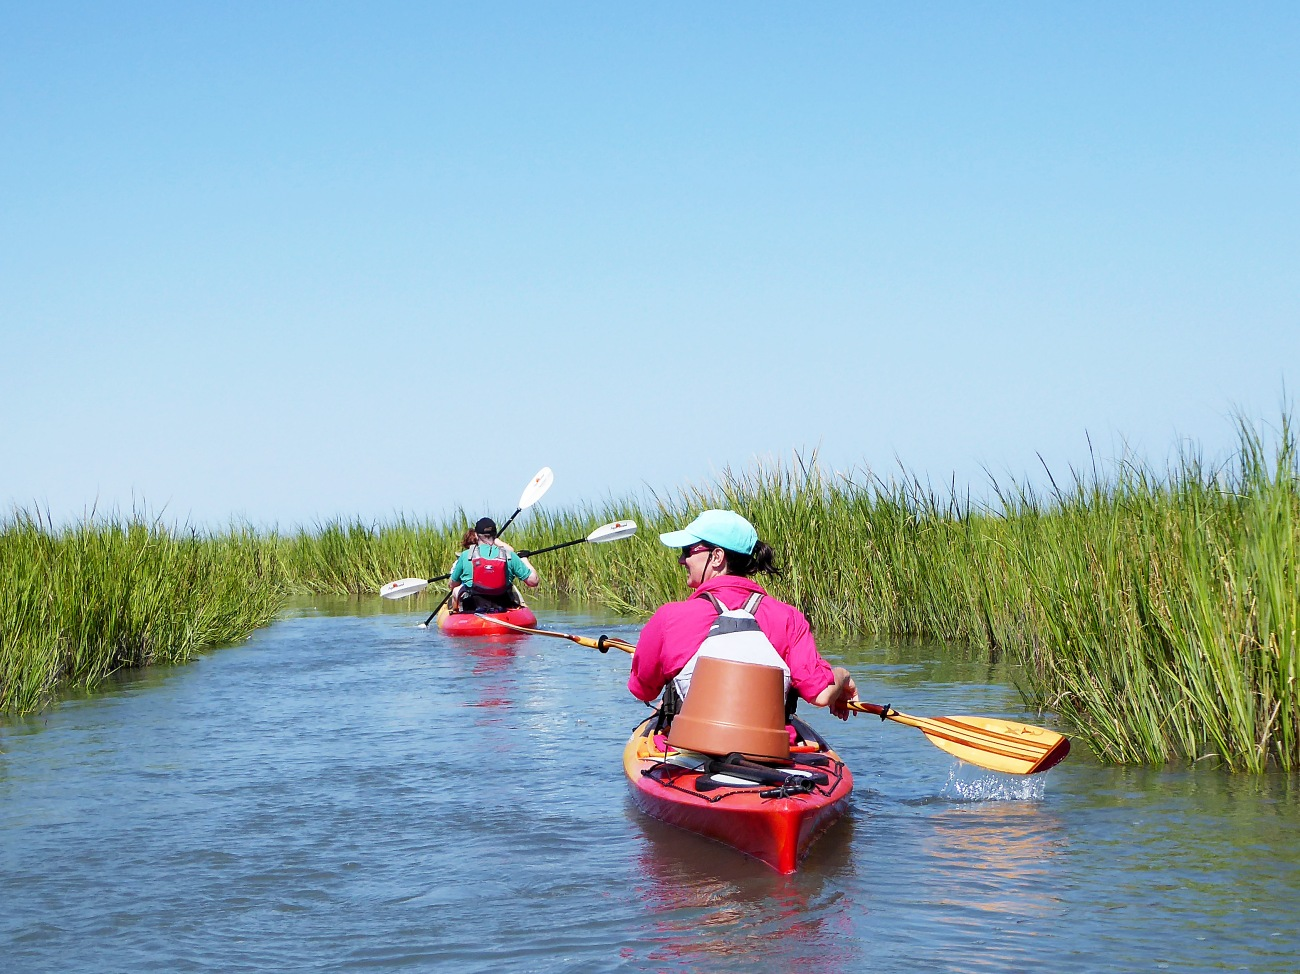 20160827_153019_Paddling the river in the grass